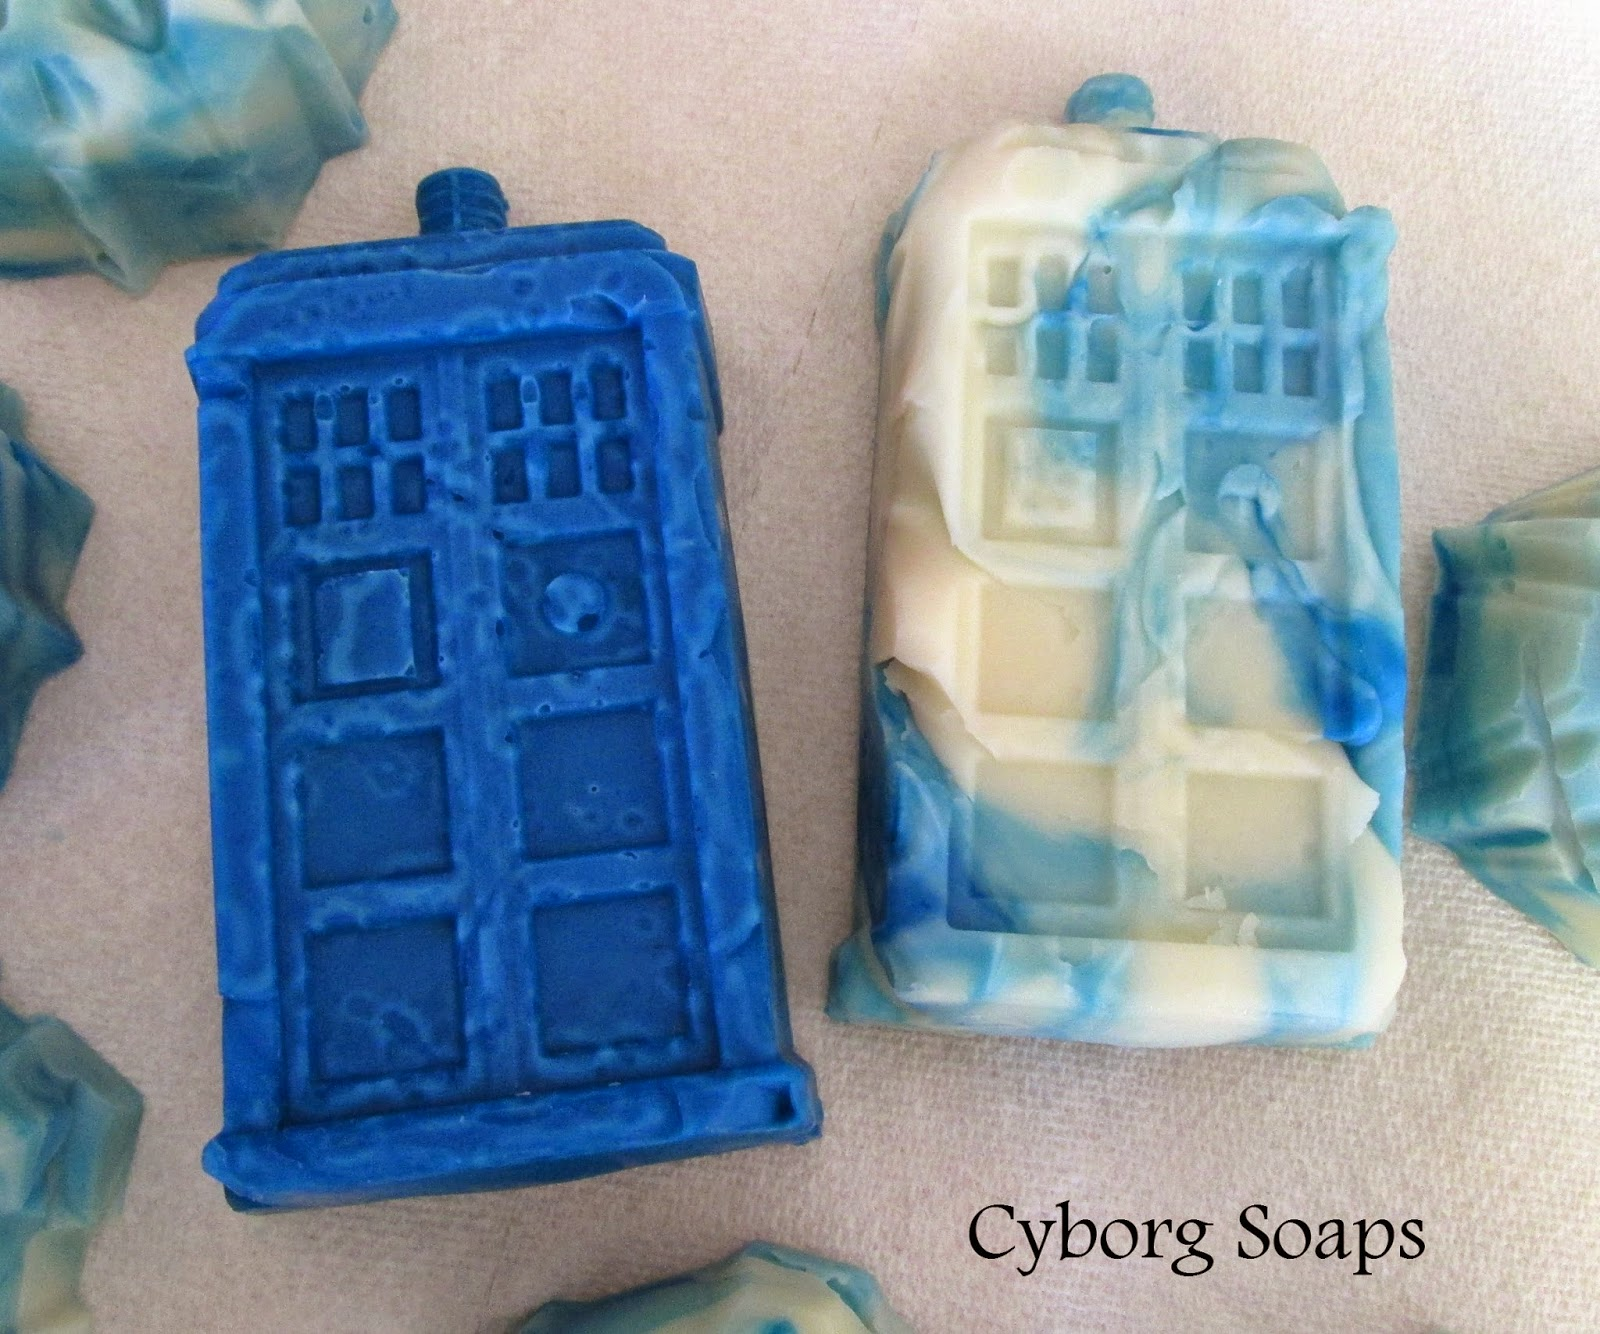 https://cyborgsoaps.wordpress.com/2014/11/18/doctor-who-tardis-soap/